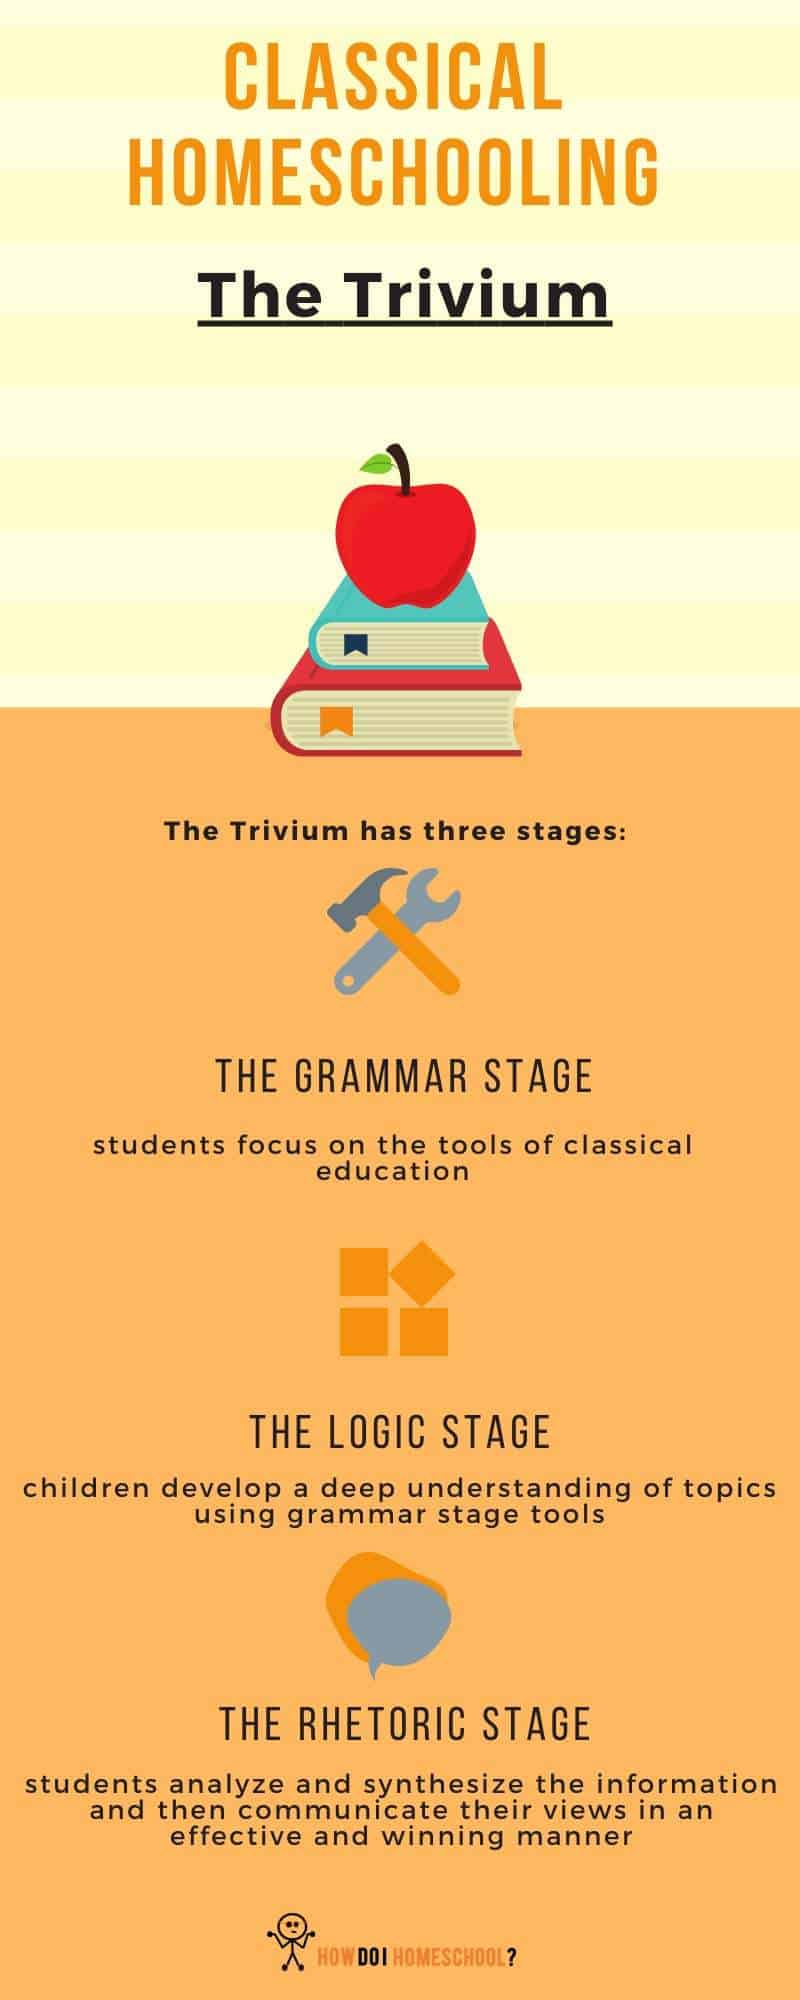 Intrinsic to Classical homeschooling is the Trivium. The Trivium includes three stages: the Grammar stage, The Logic, Stage and the Rhetoric Stage. Find out more about the Classical approach by clicking on the link! #classicalhomeschooling